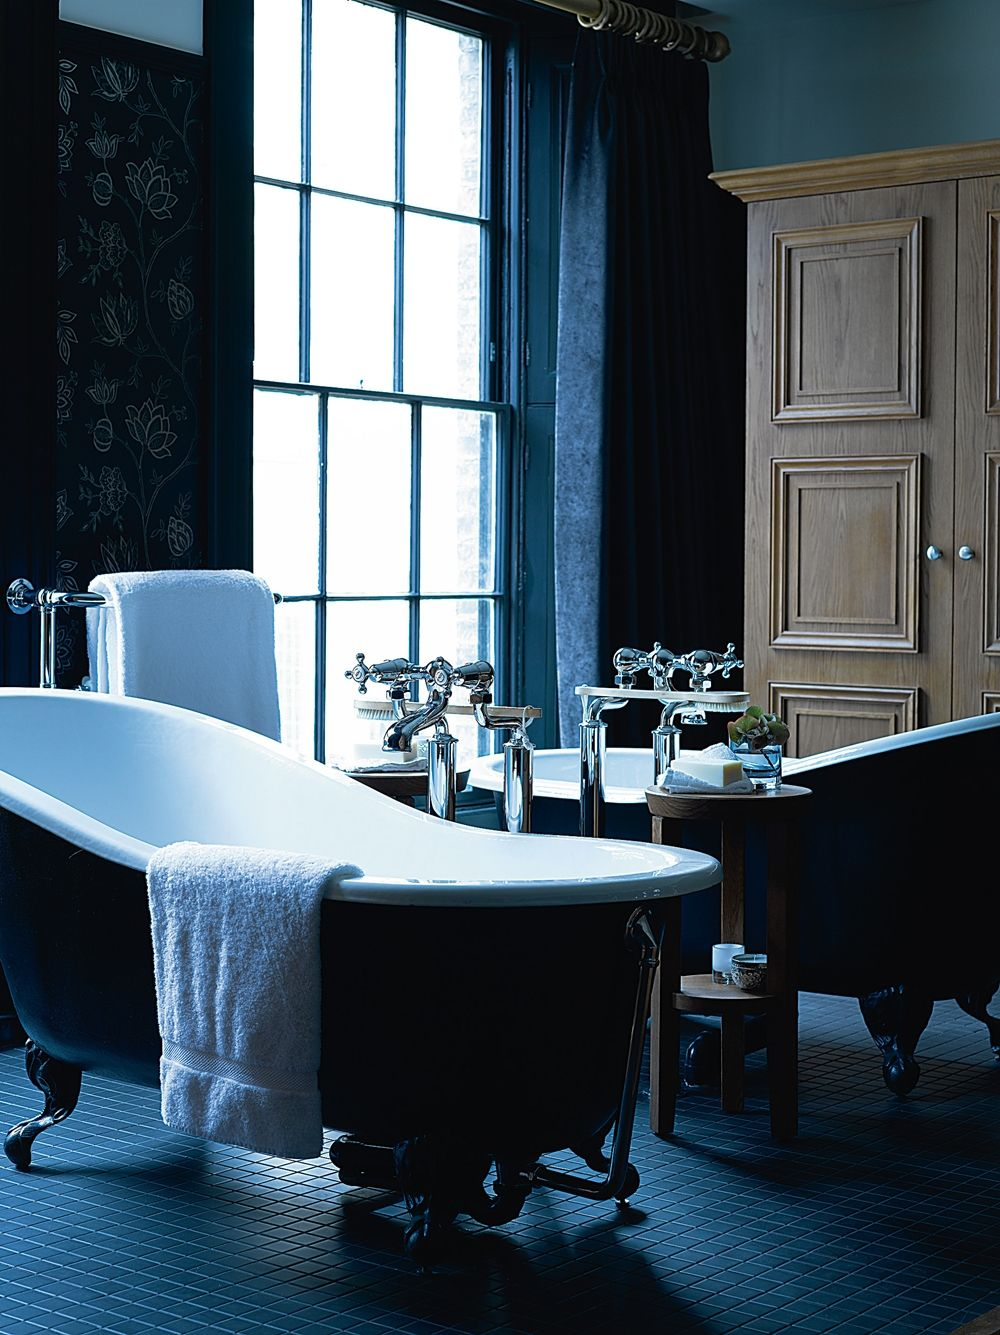 Twin cast iron Slipper baths at Hotel du Vin Bristol | Decor ideas ...